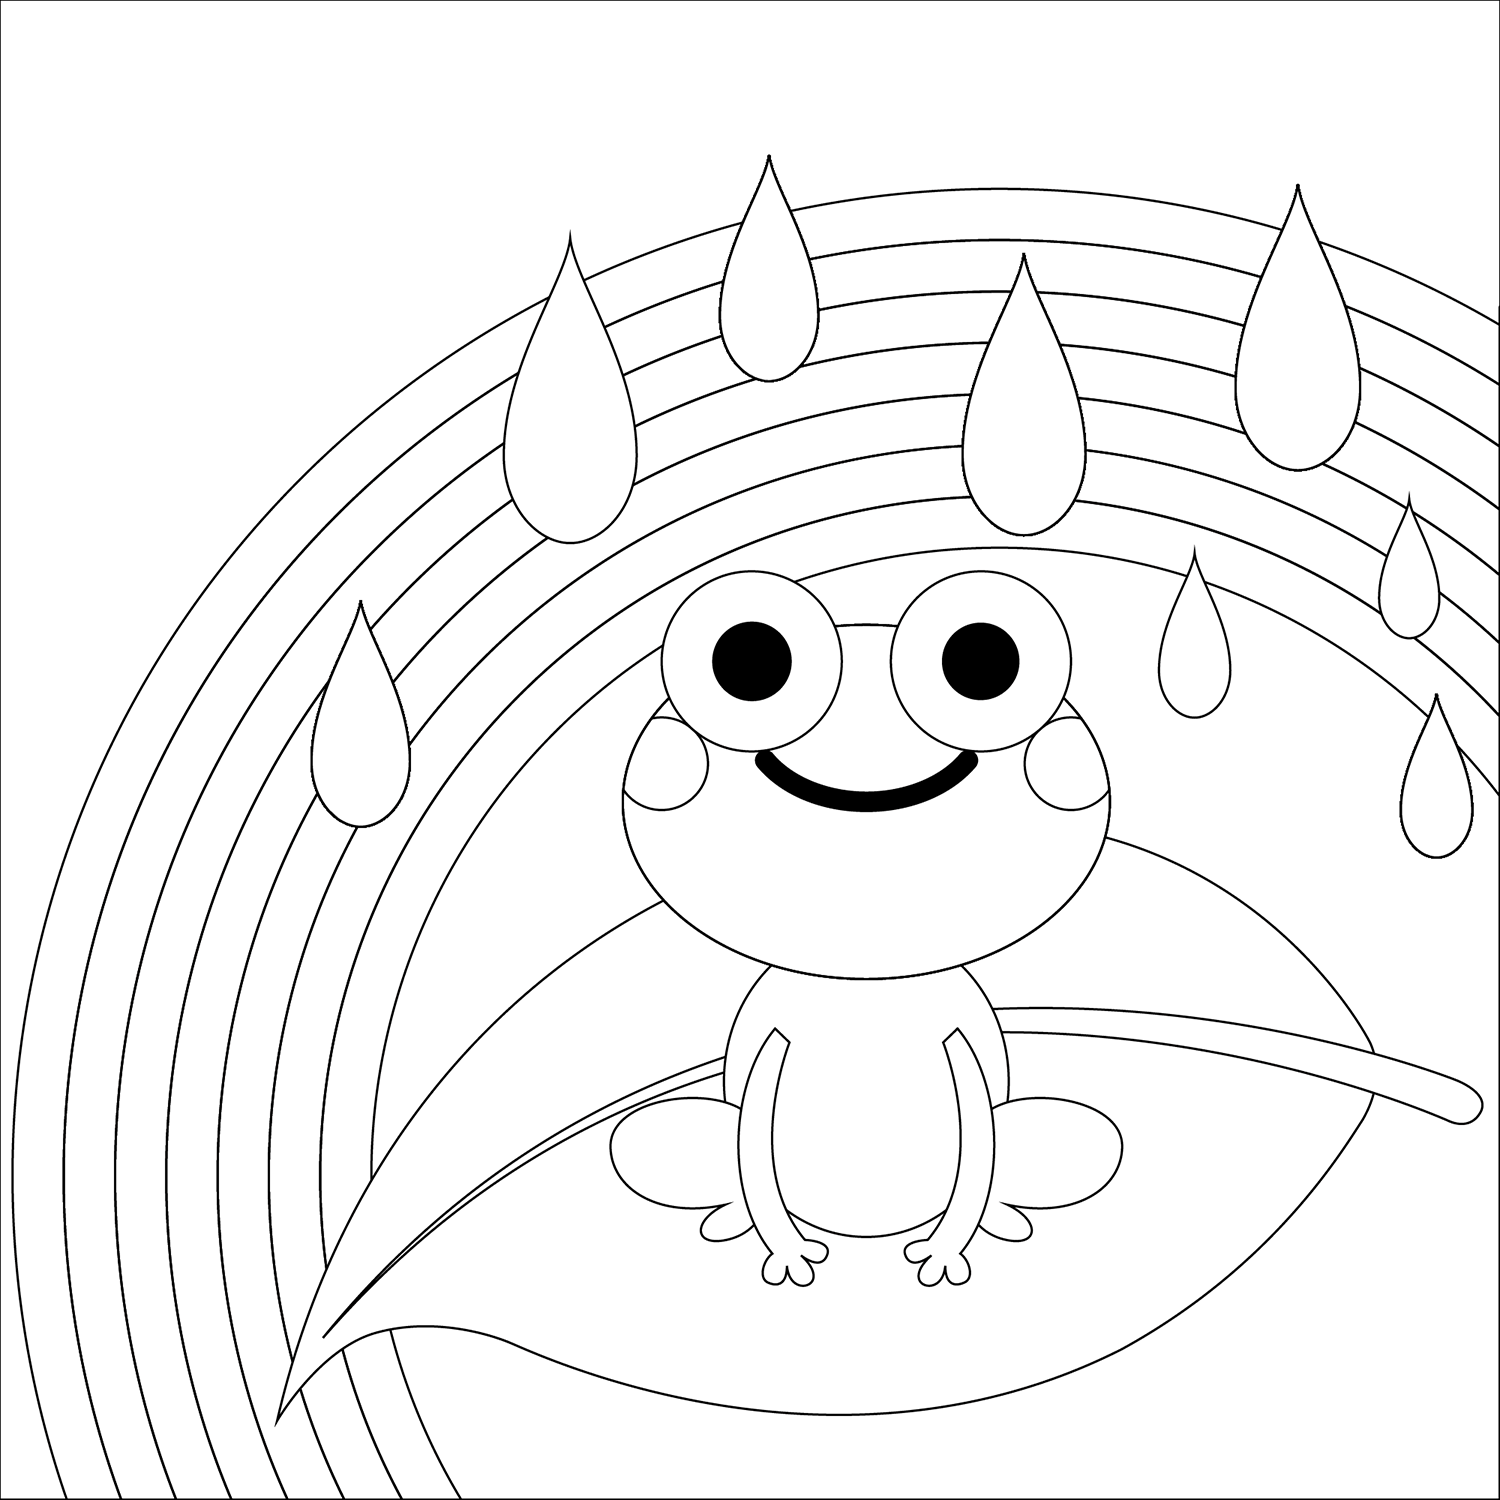 RAINBOW-AND-FROG-RAINDROPS-Clipart Coloring Pages for Kids Adults Art Activities Line Art